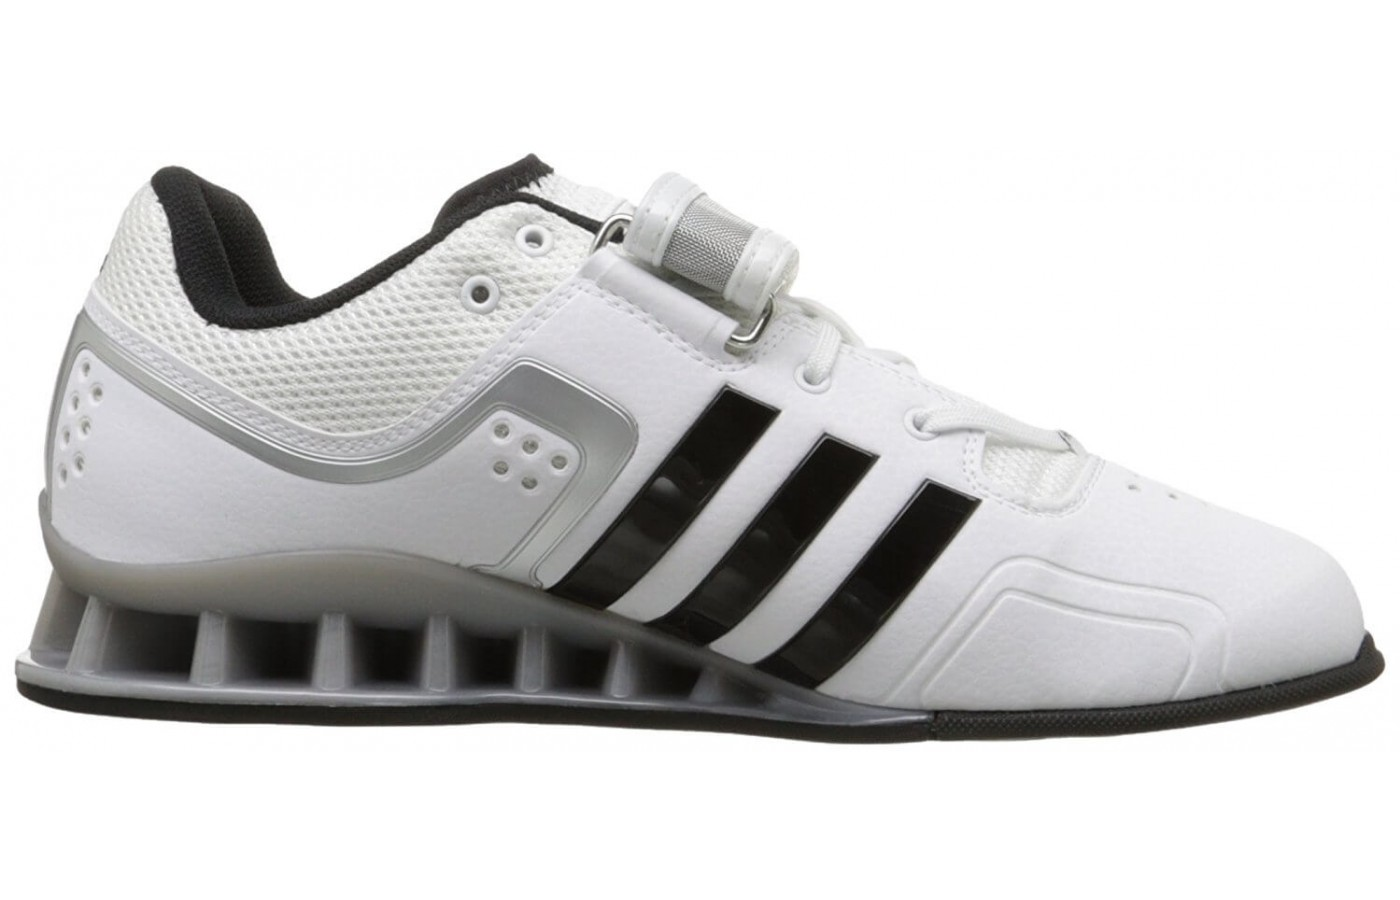 93bed18f0b26 Adidas utilizes a weightlifting specific chassis in their design.